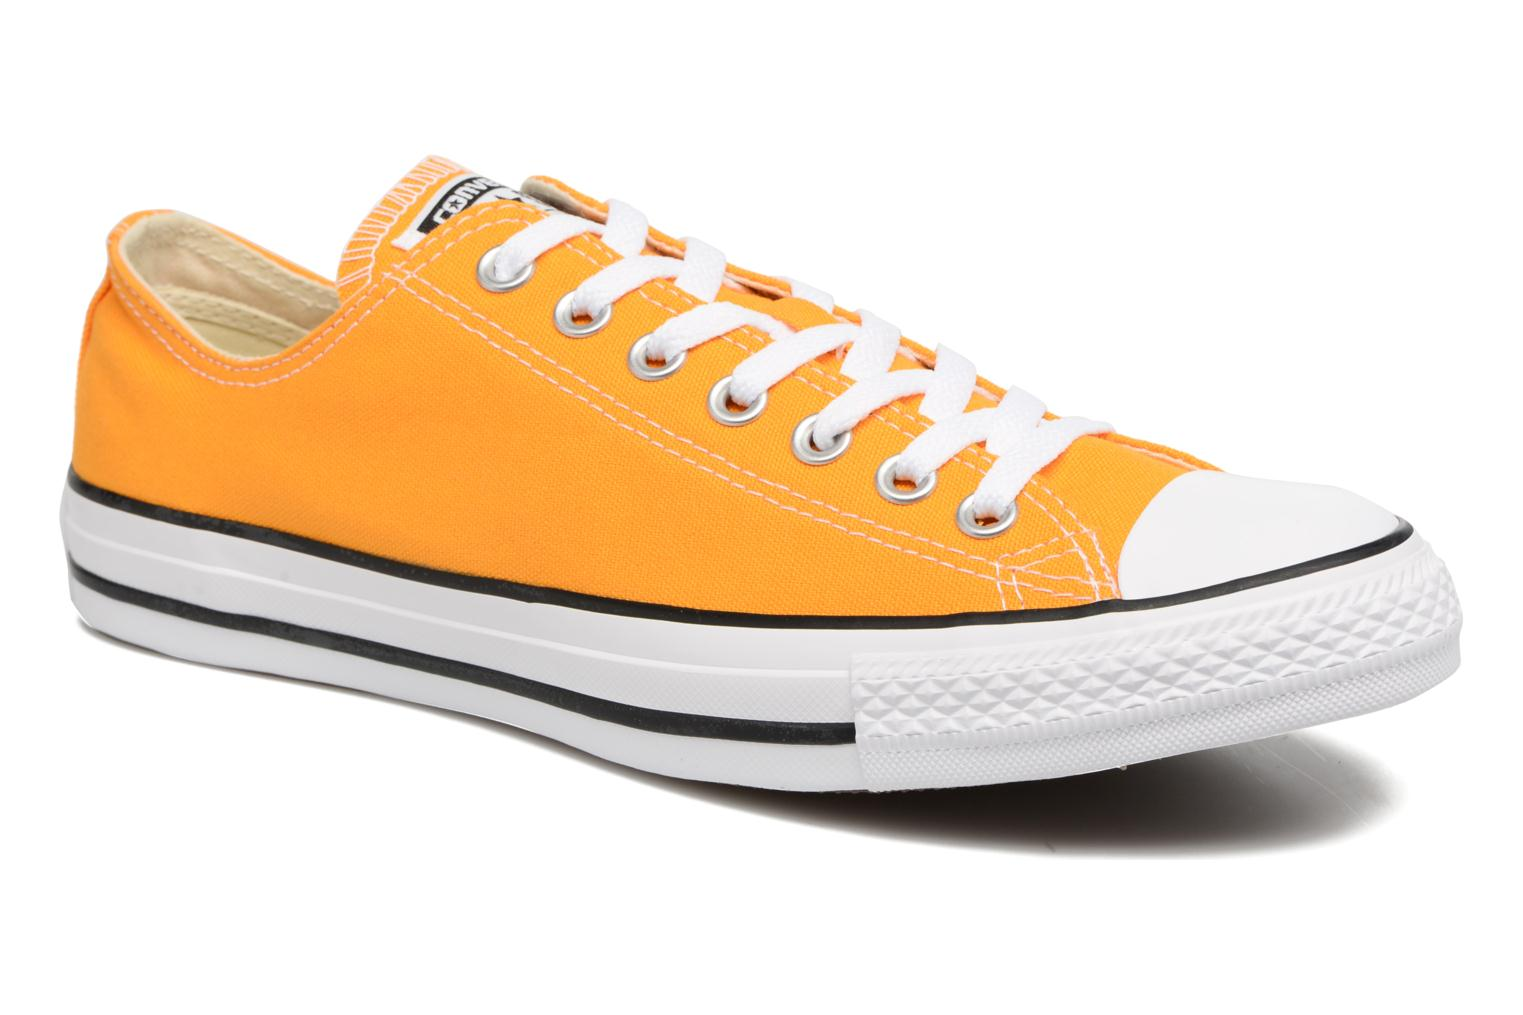 Converse Zapatillas Chuck Taylor All Star Amarillo EUR 42 (US 8.5) WZgfy9GXiE